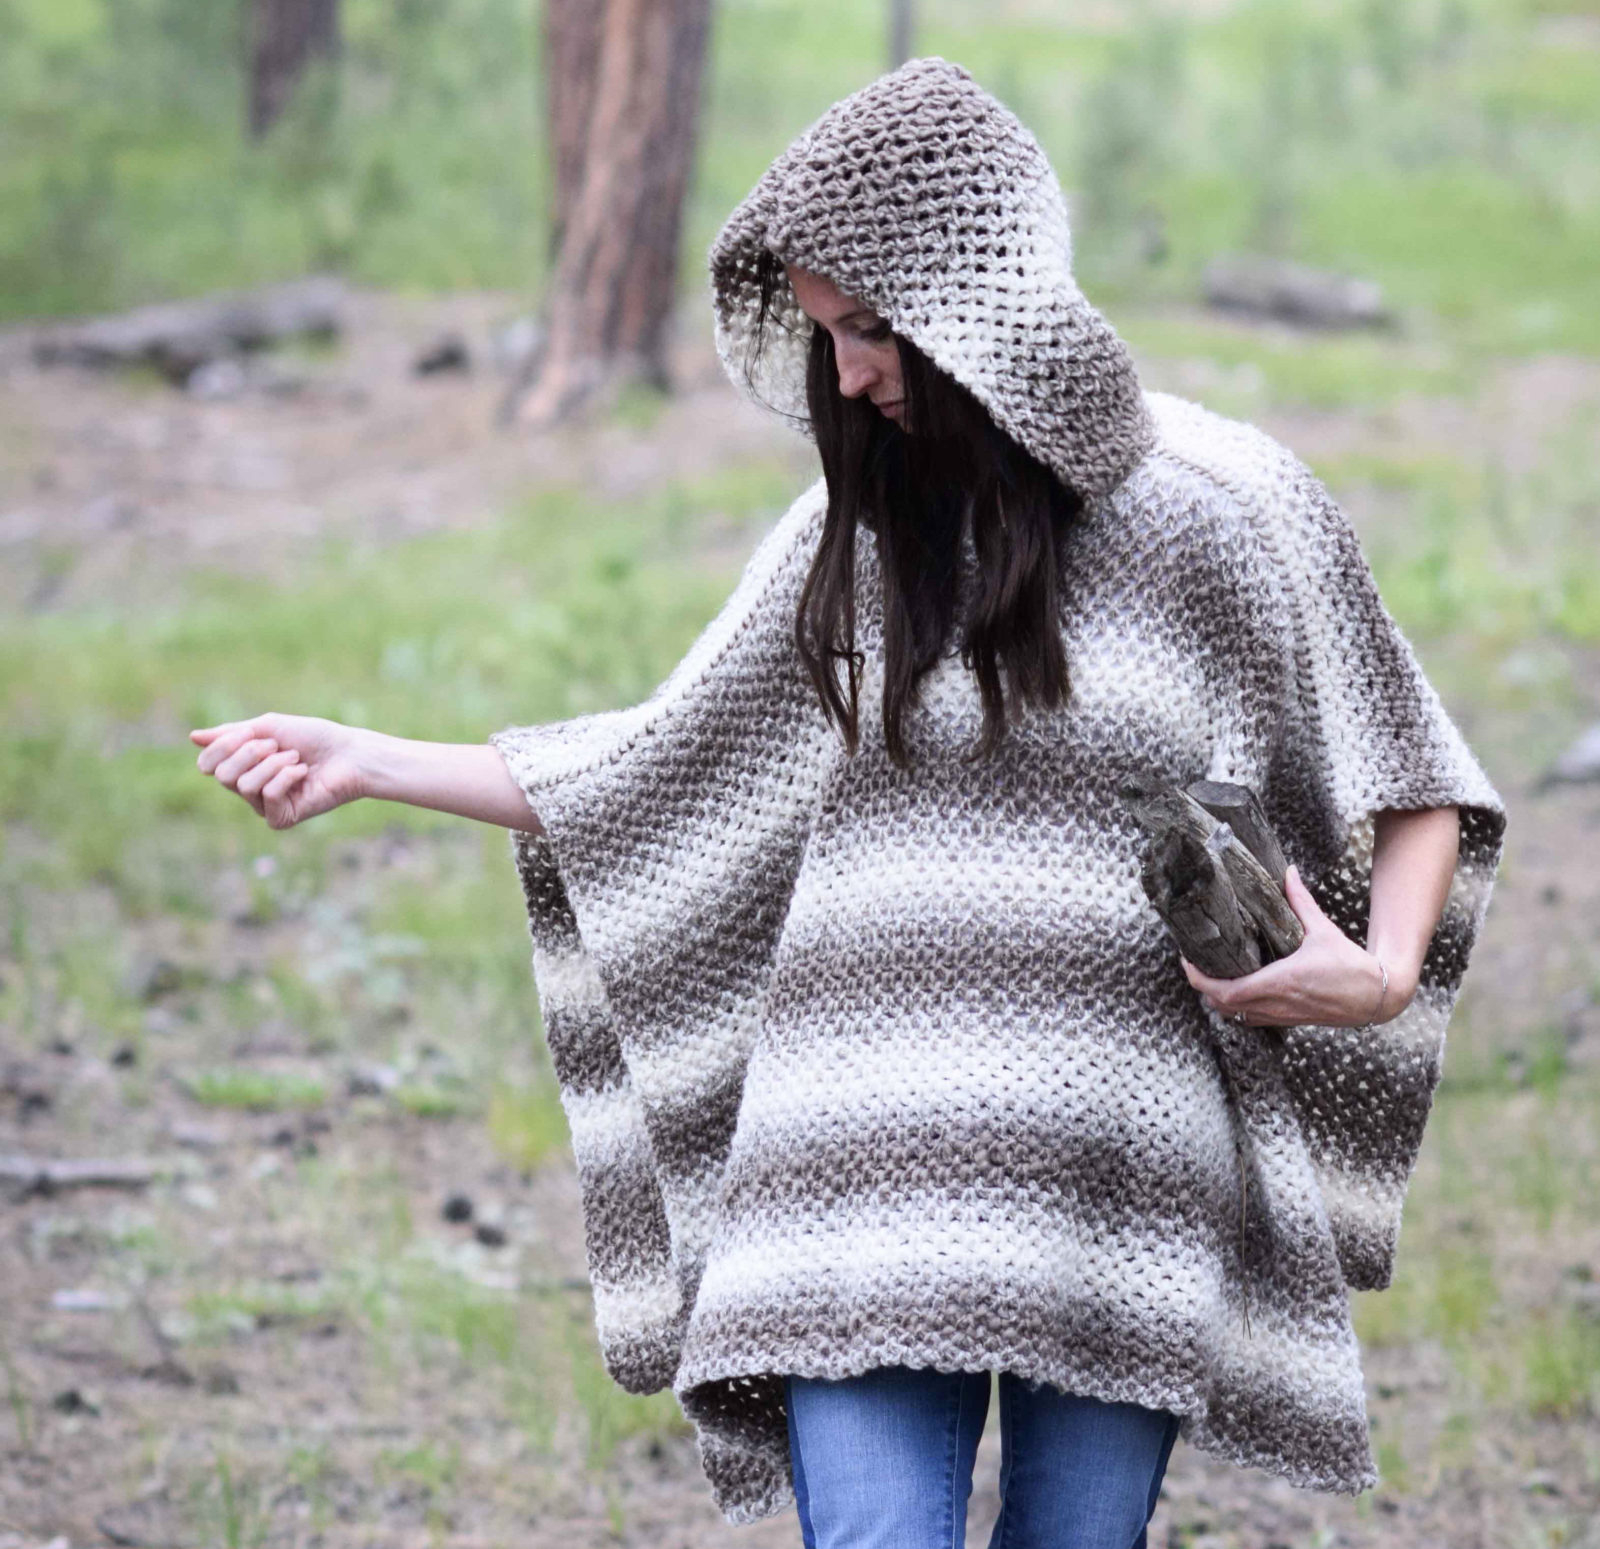 Simple Poncho Crochet Pattern Driftwood Oversized Crochet Hooded Poncho Pattern Mama In A Stitch